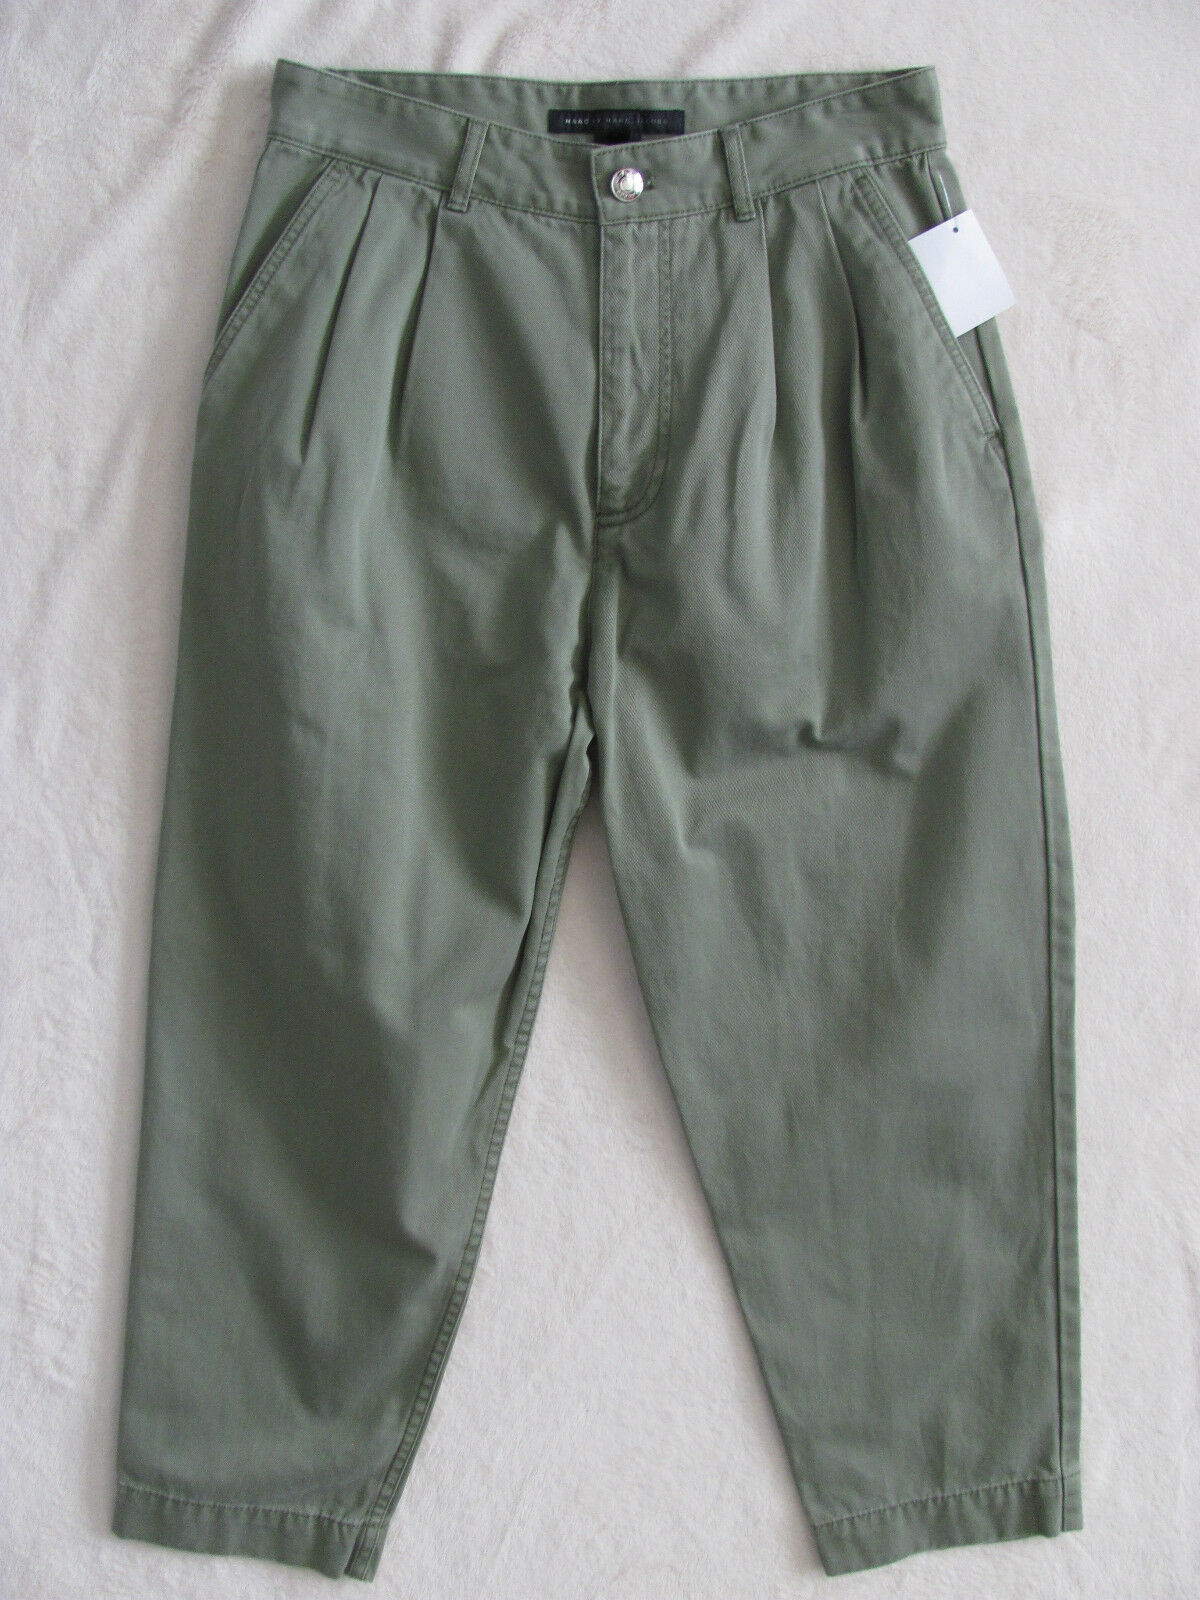 Marc by Marc Jacobs Pleated Cropped Capri Pants-Moore Green-Size 2 -NWT  278